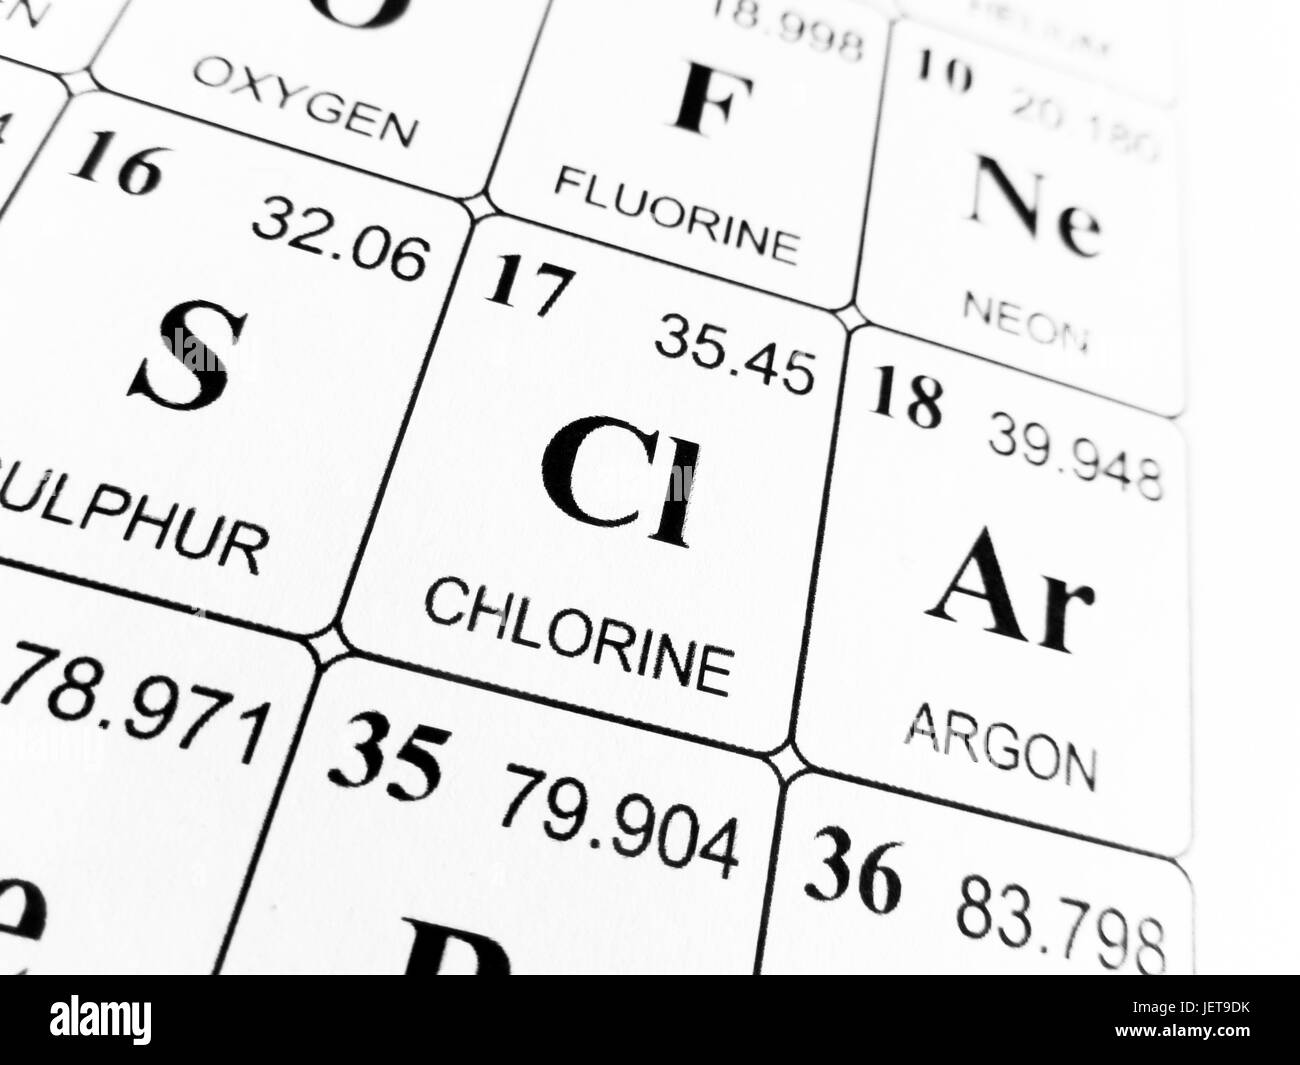 Periodic table chlorine facts gallery periodic table images periodic table chlorine facts images periodic table images periodic table chlorine facts image collections periodic table gamestrikefo Images